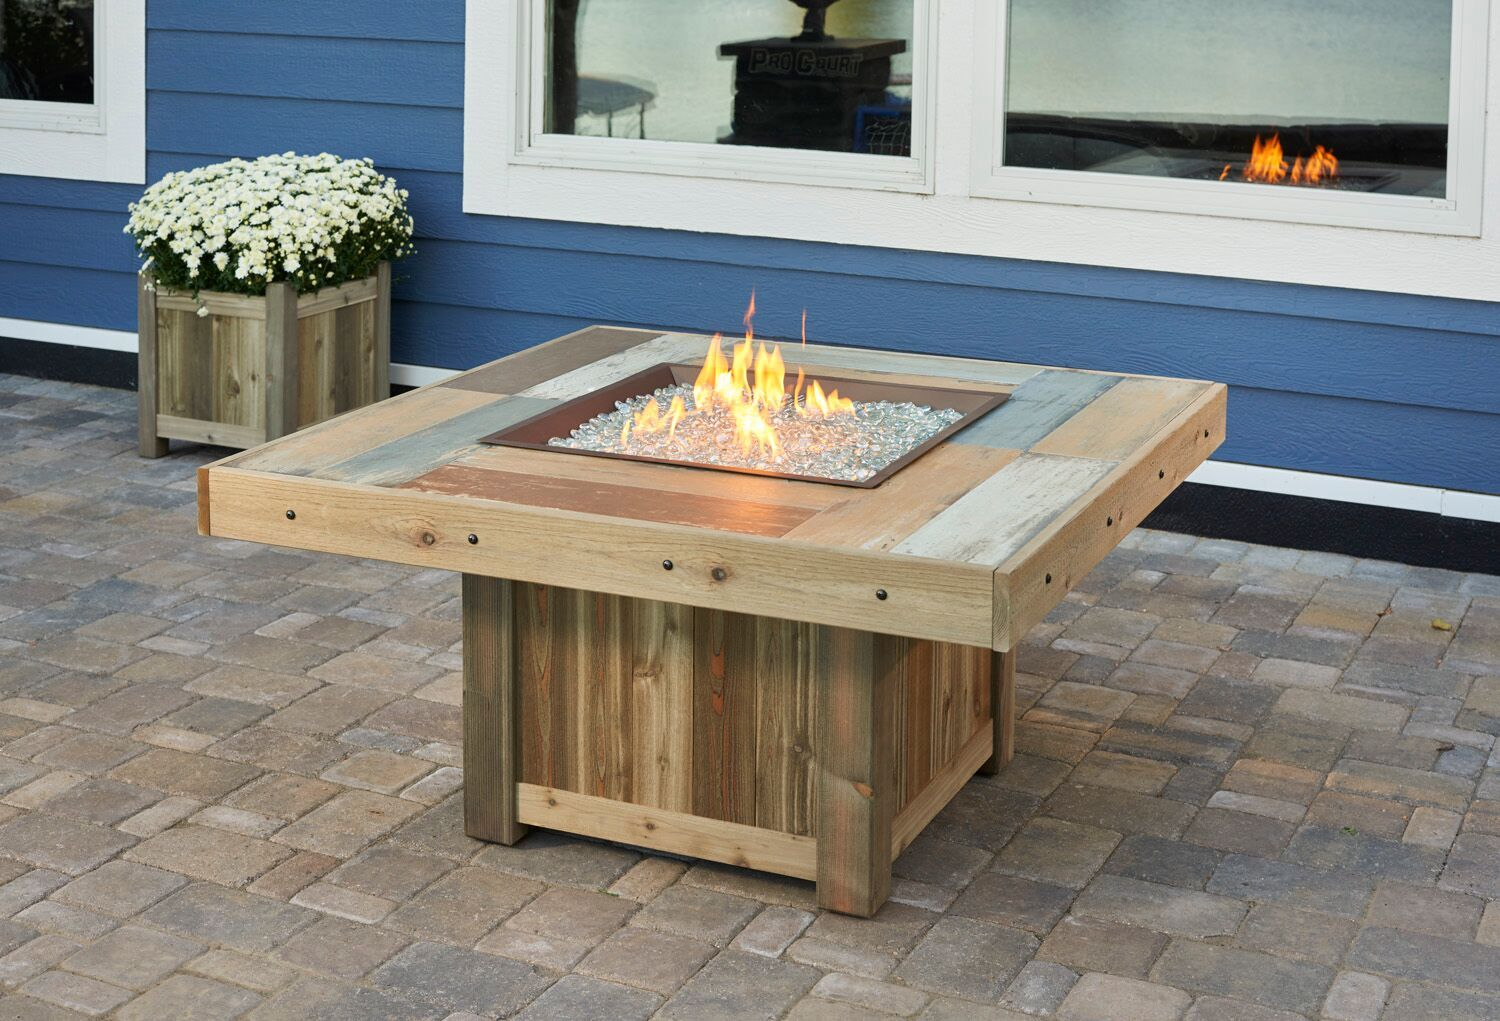 Fireplace Tables Outdoor Fire Pits And Tables Gallery Flame Connection Serving